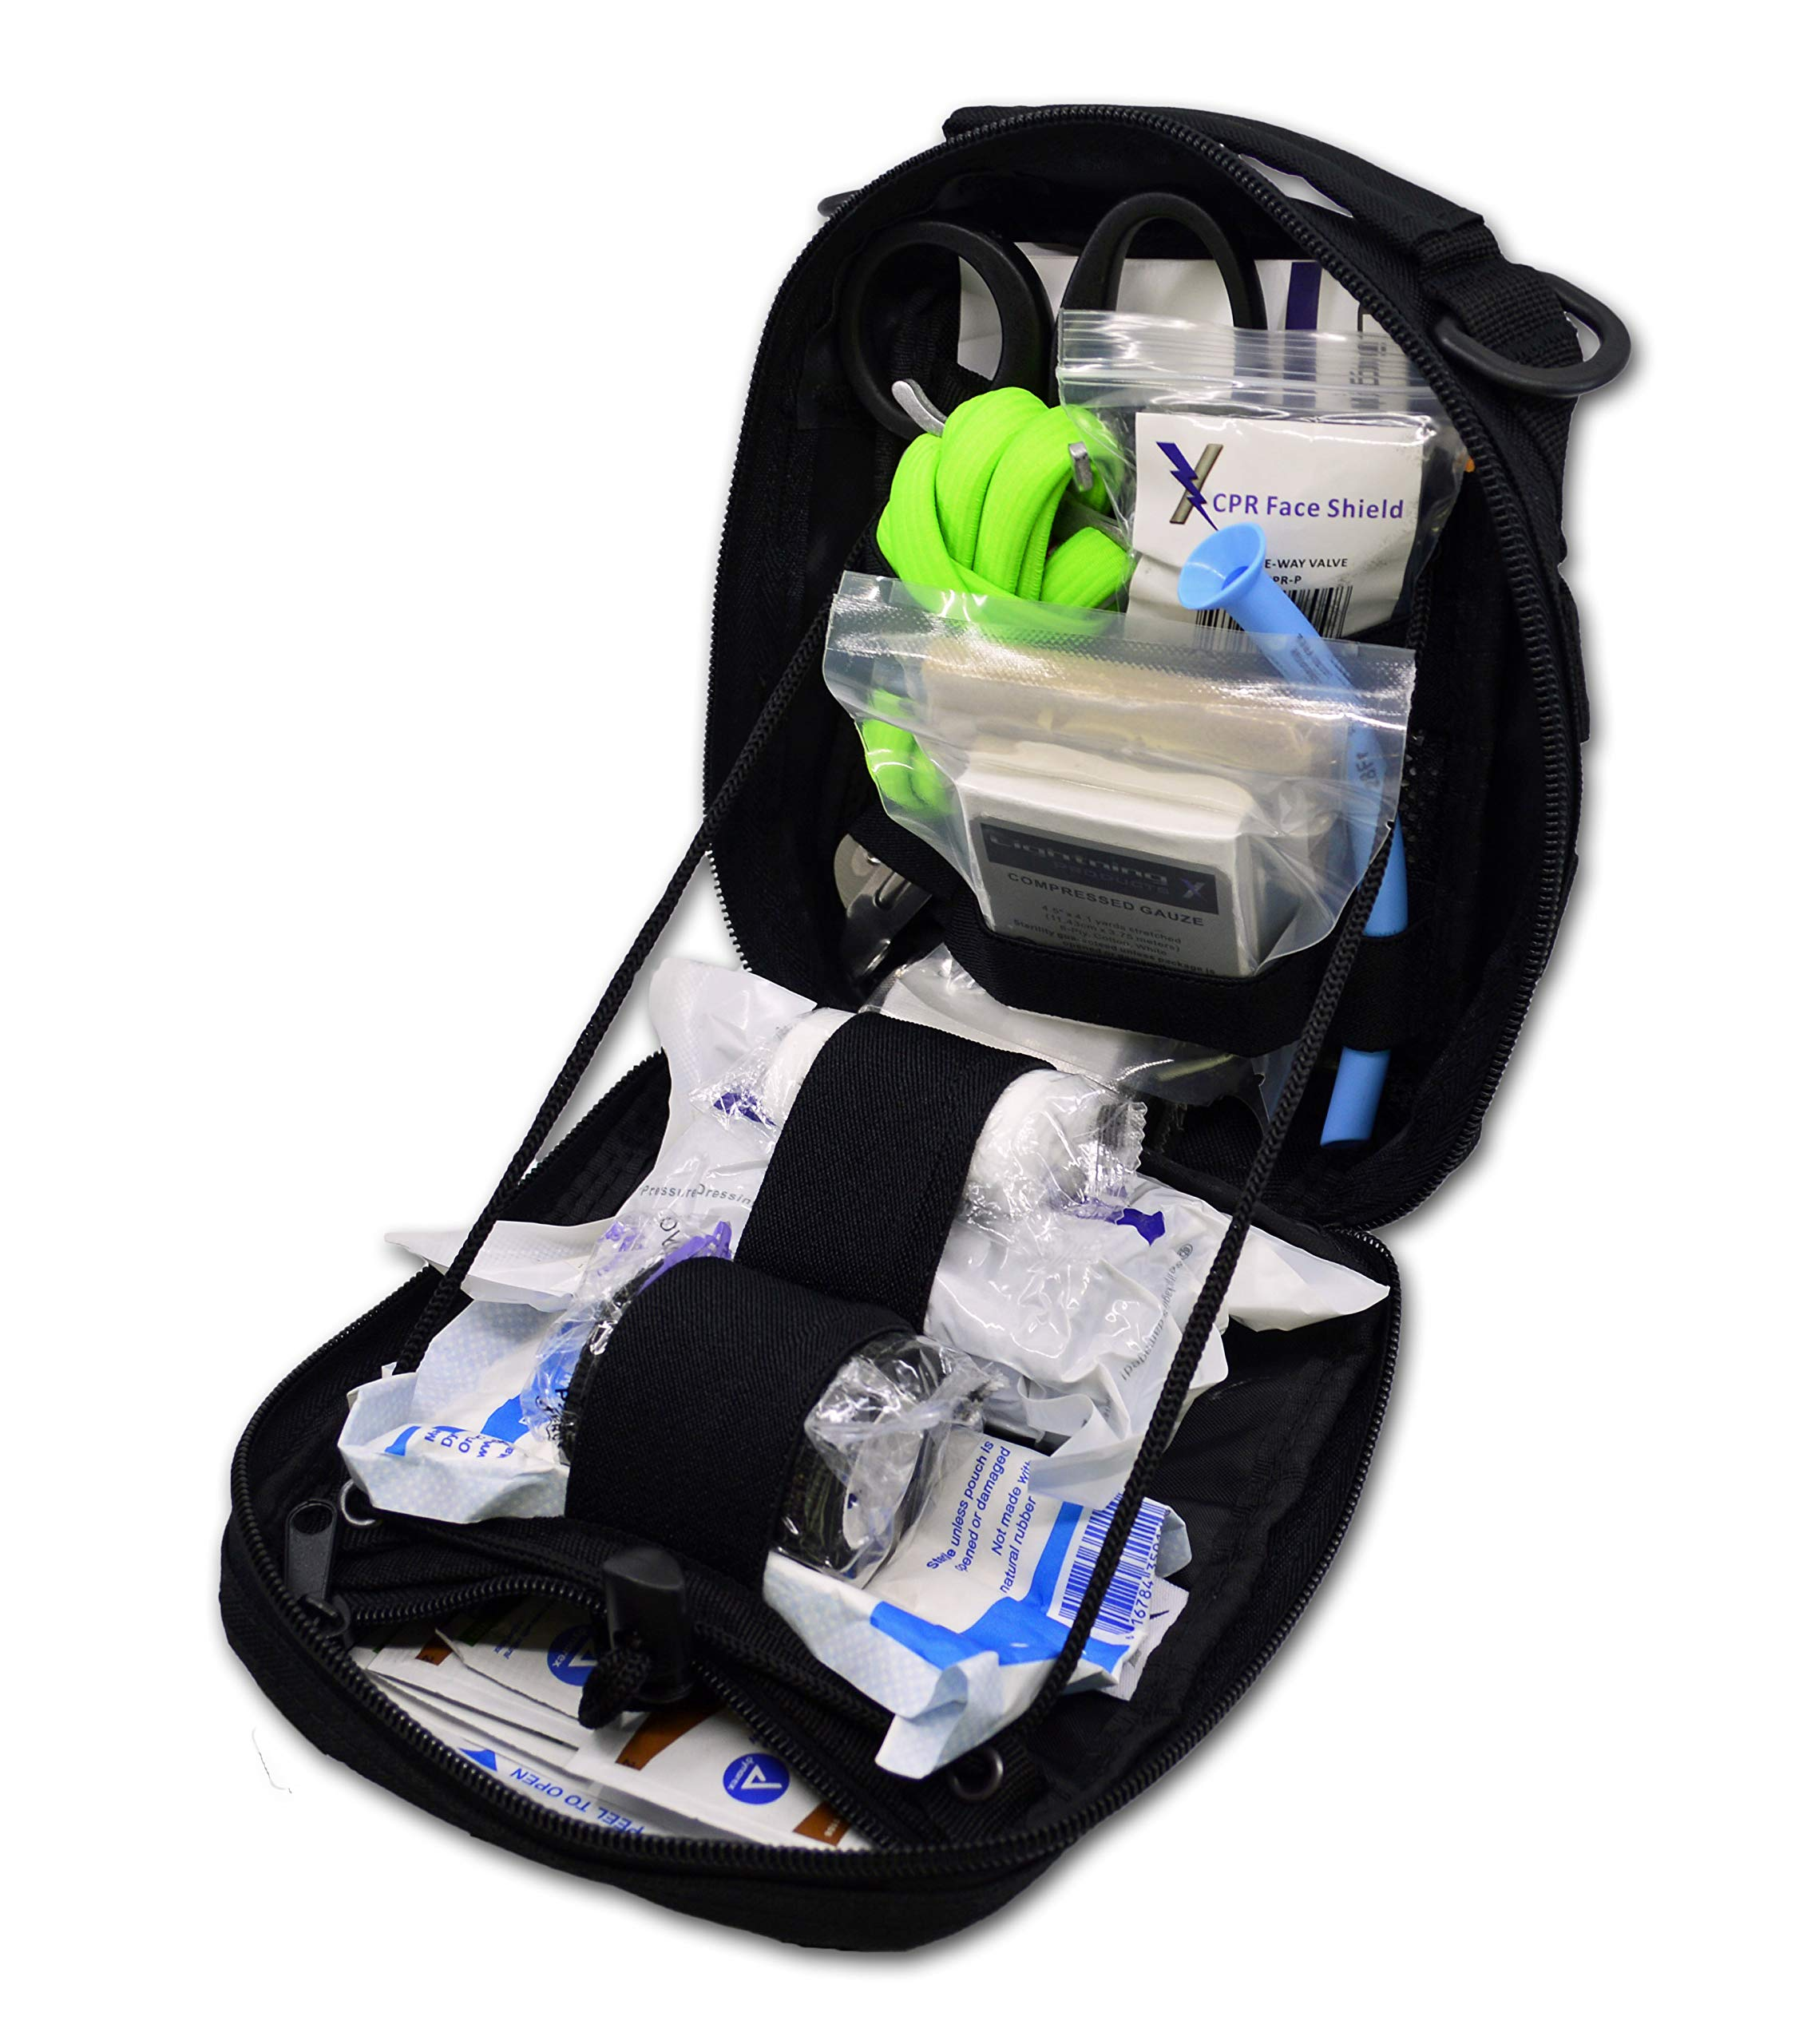 Lightning X Individual First Aid Trauma/Hemorrhage Control Kit in MOLLE IFAK Pouch Value Edition - Black by Lightning X Products